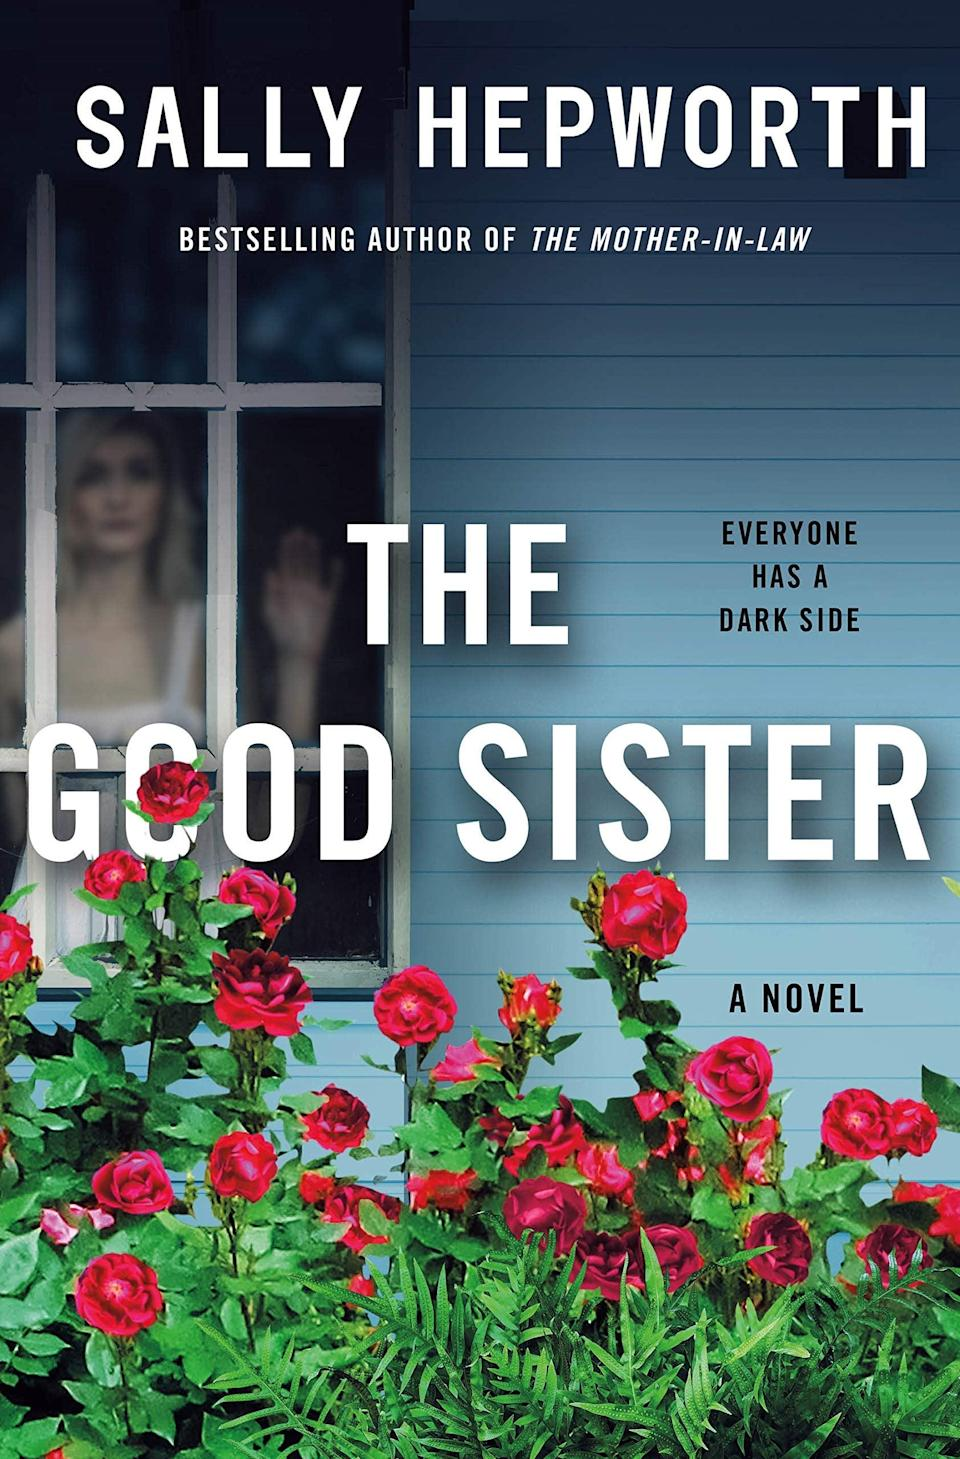 "<p>Sally Hepworth weaves an unsettling tale of sisterly love and dark secrets in <a href=""https://www.amazon.com/Good-Sister-Novel-Sally-Hepworth/dp/1250120950"" class=""link rapid-noclick-resp"" rel=""nofollow noopener"" target=""_blank"" data-ylk=""slk:The Good Sister""><strong>The Good Sister</strong></a>. Fern knows she owes everything to her twin sister Rose, so when Rose discovers she can't get pregnant, Fern decides to give her sister a baby - but her seemingly kind act will lead to a shocking turn of events. </p> <p><em>Out April 13</em></p>"